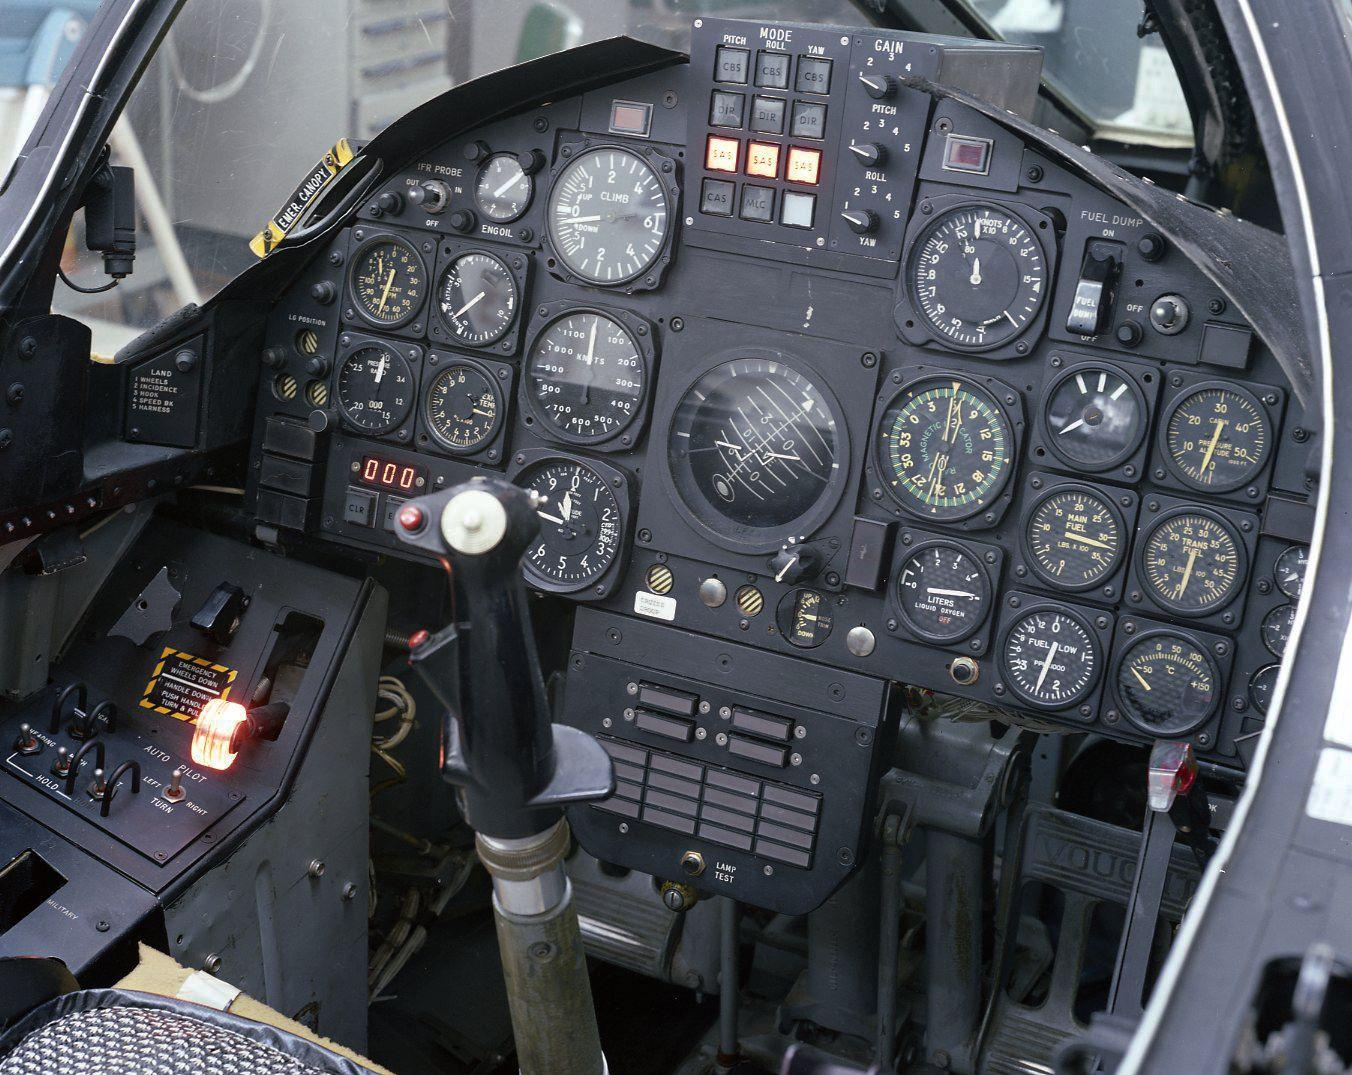 hight resolution of f 8 digital fly by wire cockpit